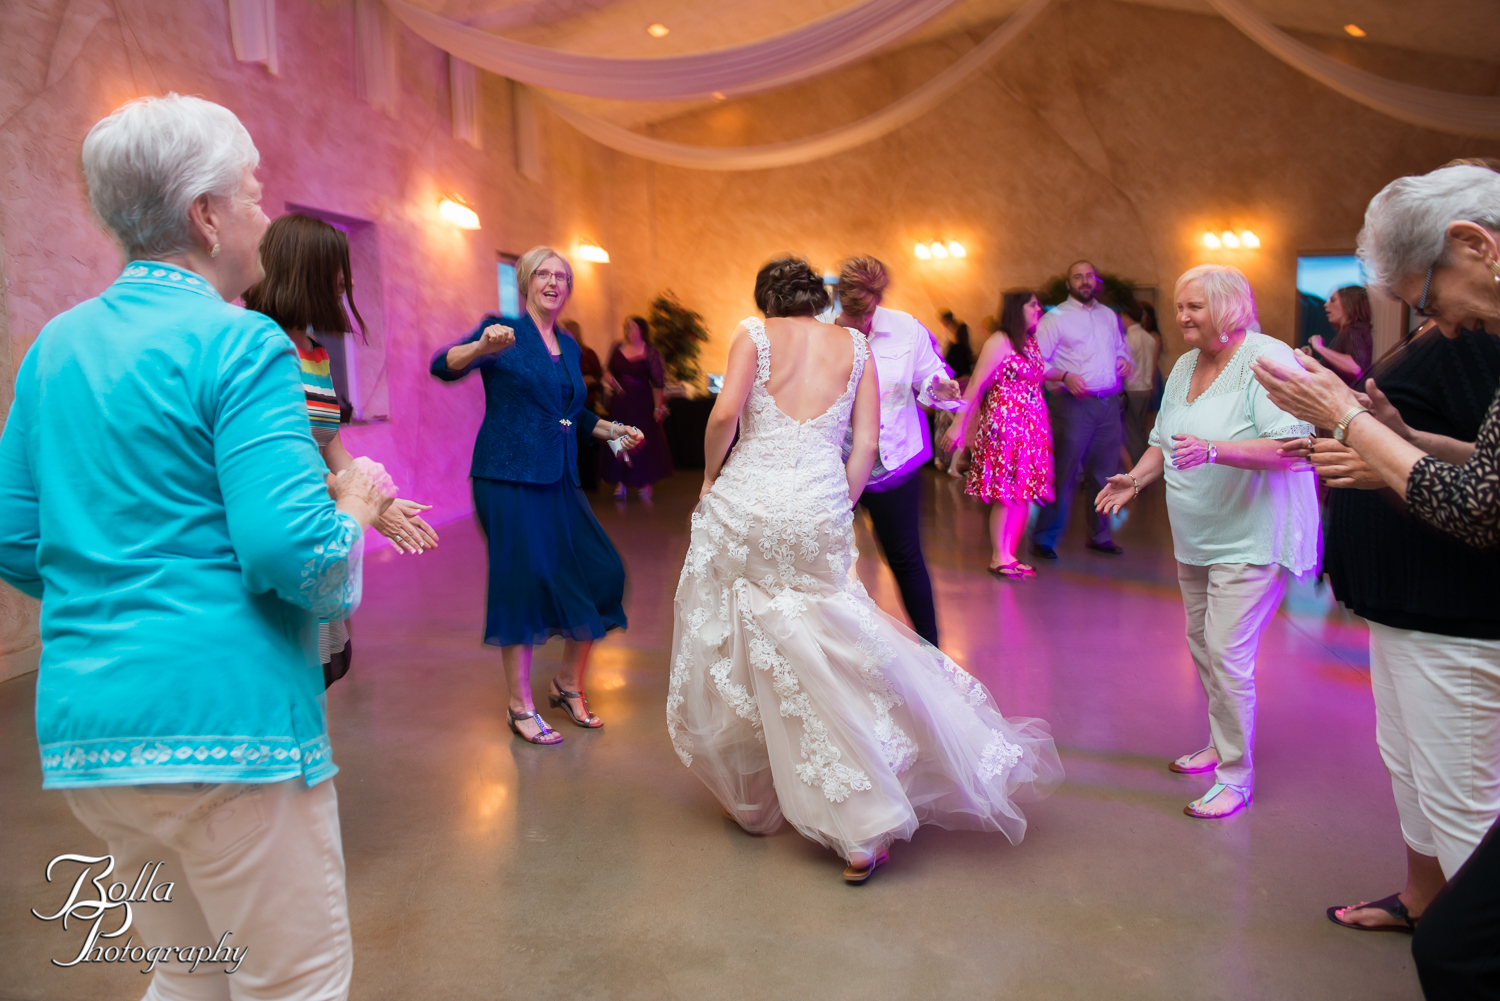 Bolla_Photography_St_Louis_wedding_photographer_Villa_Marie_Winery-0449.jpg